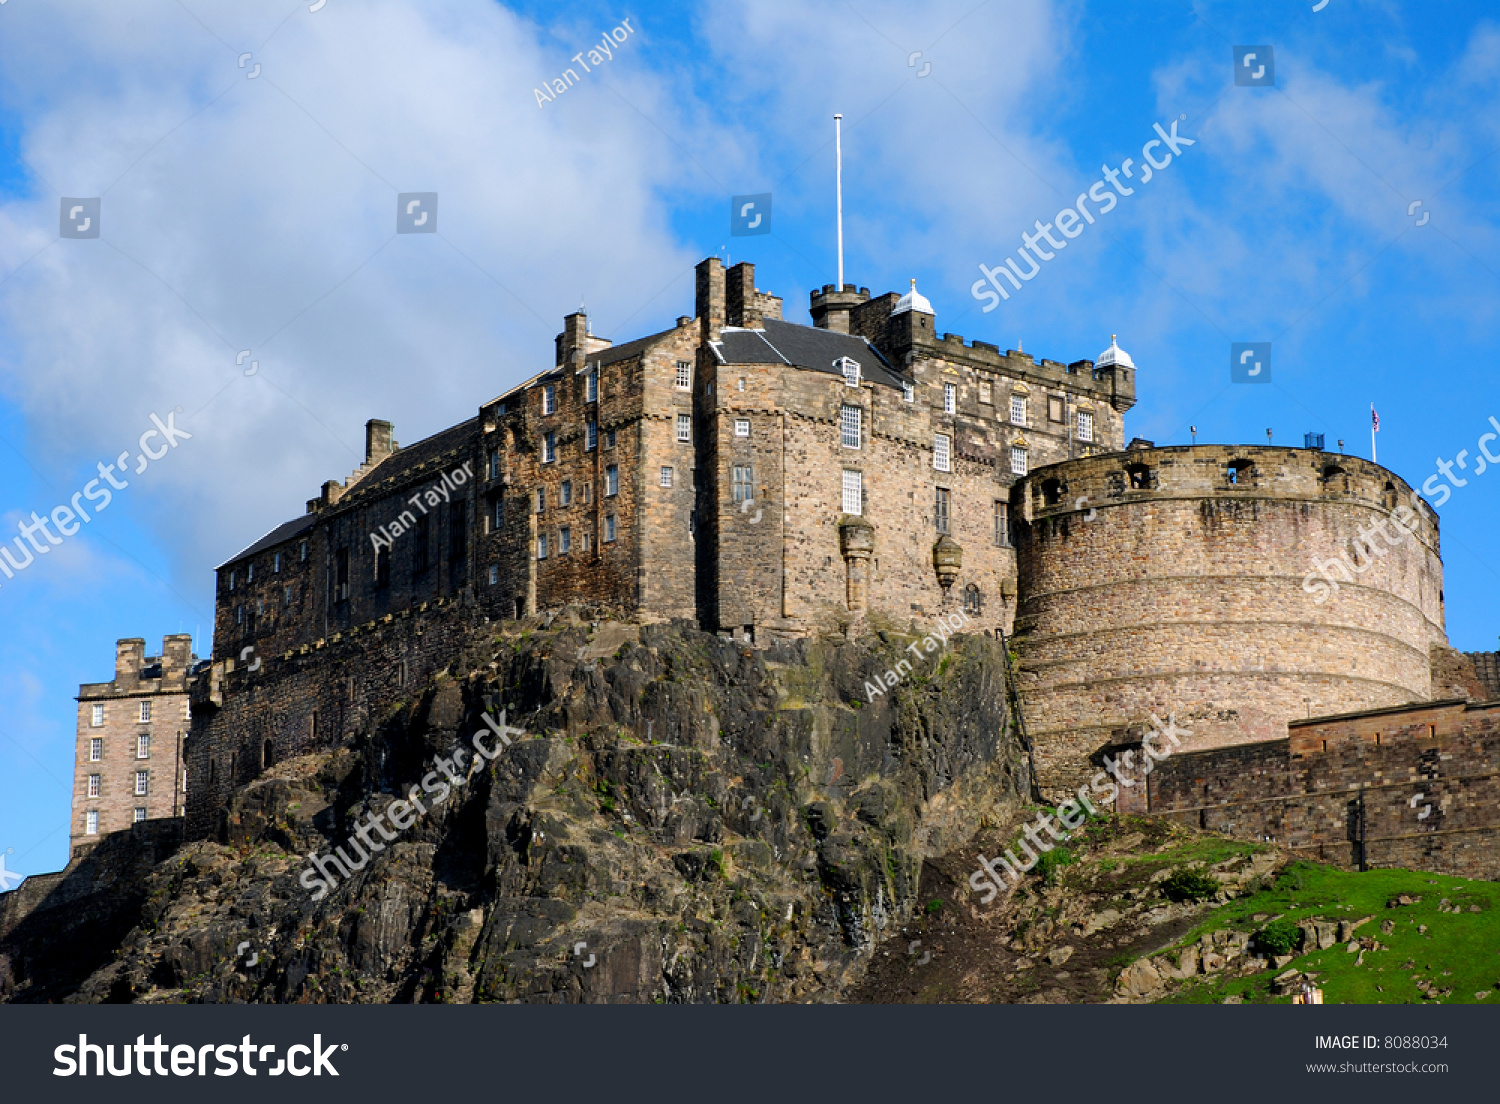 stock edinburgh castle - photo #9